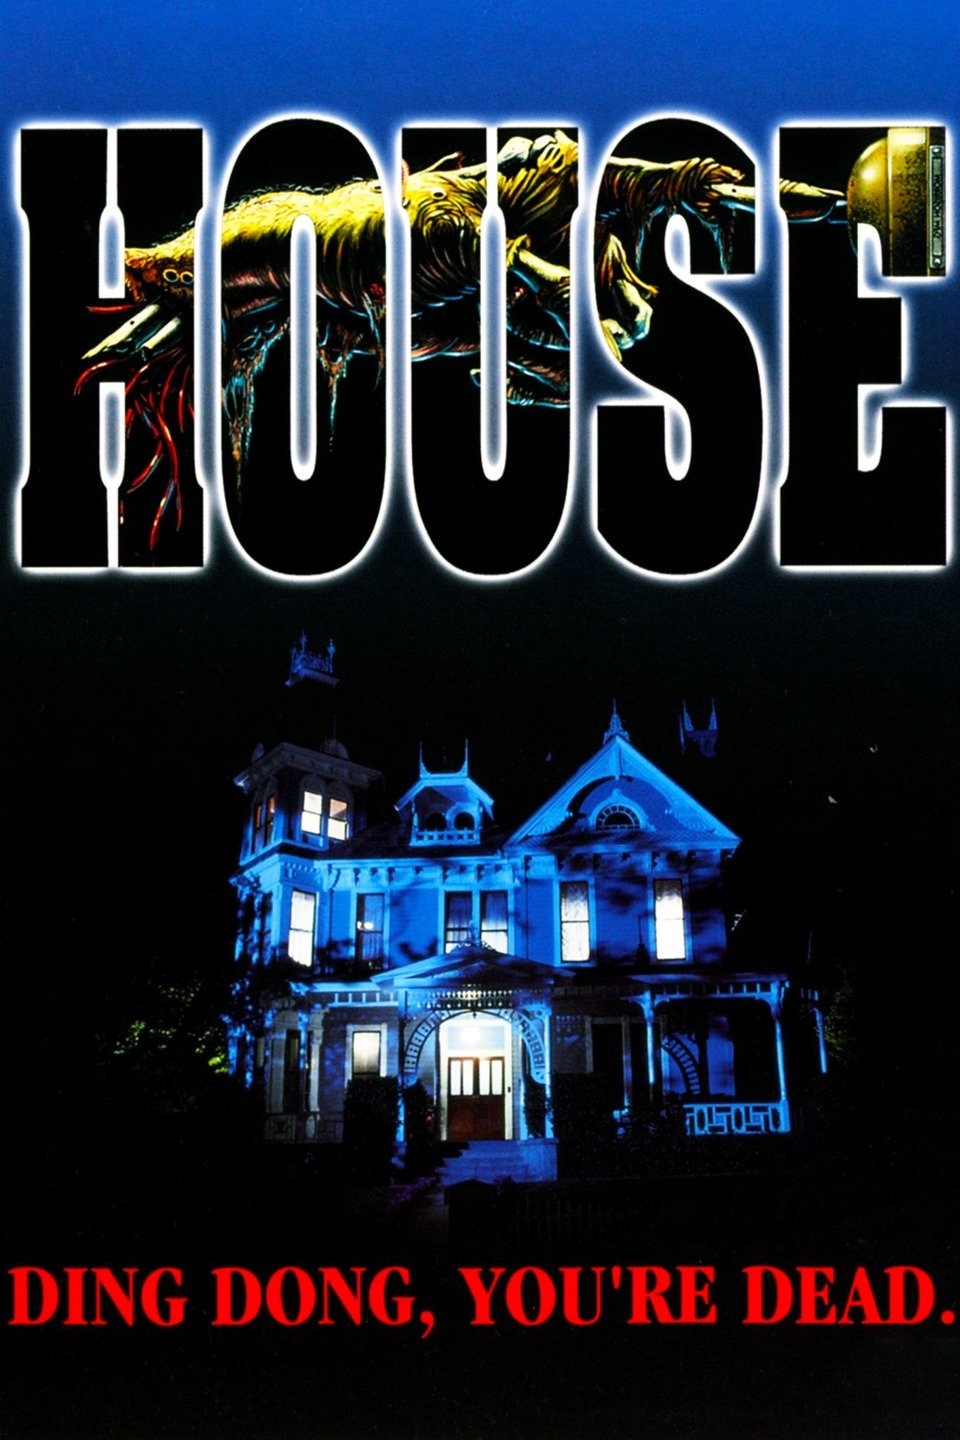 A Vietnam vet turned horror novelist returns to his boyhood home to find that it has been invaded by ghosts and ghouls.